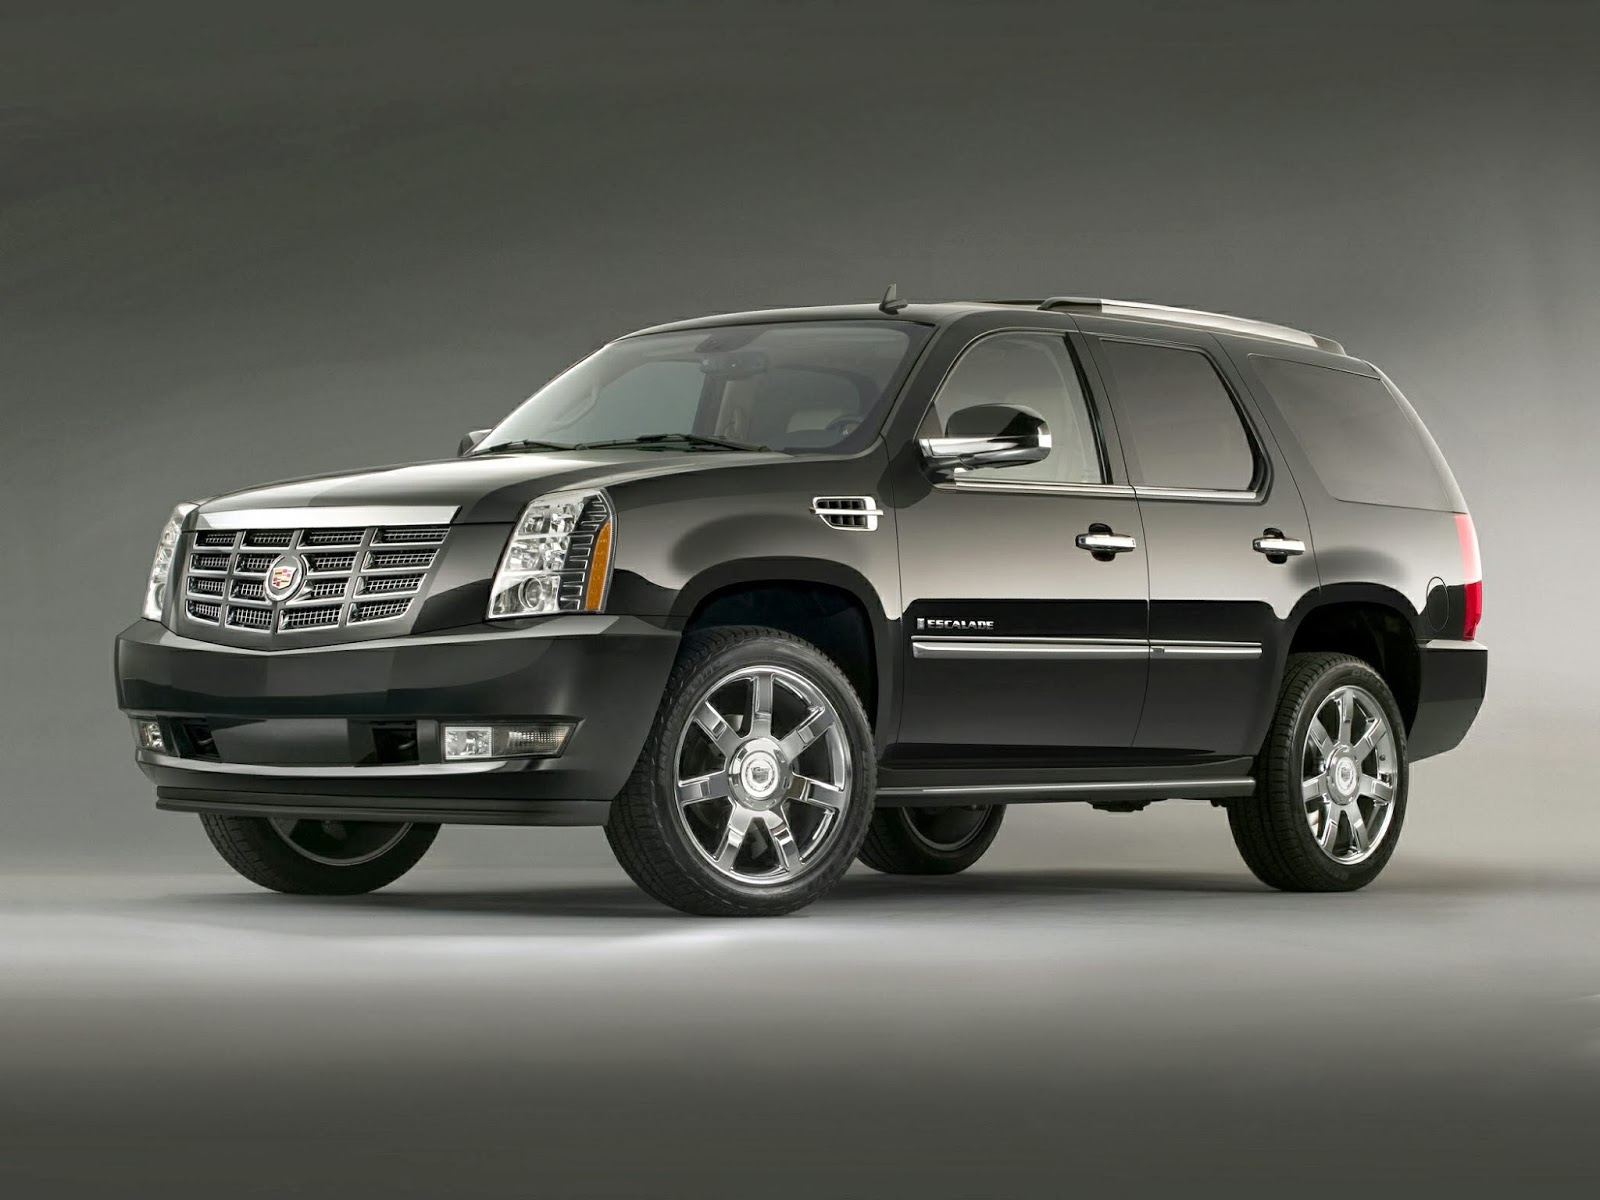 Luxury Suv: 2015 Cadillac Escalade - Luxury SUV And Price